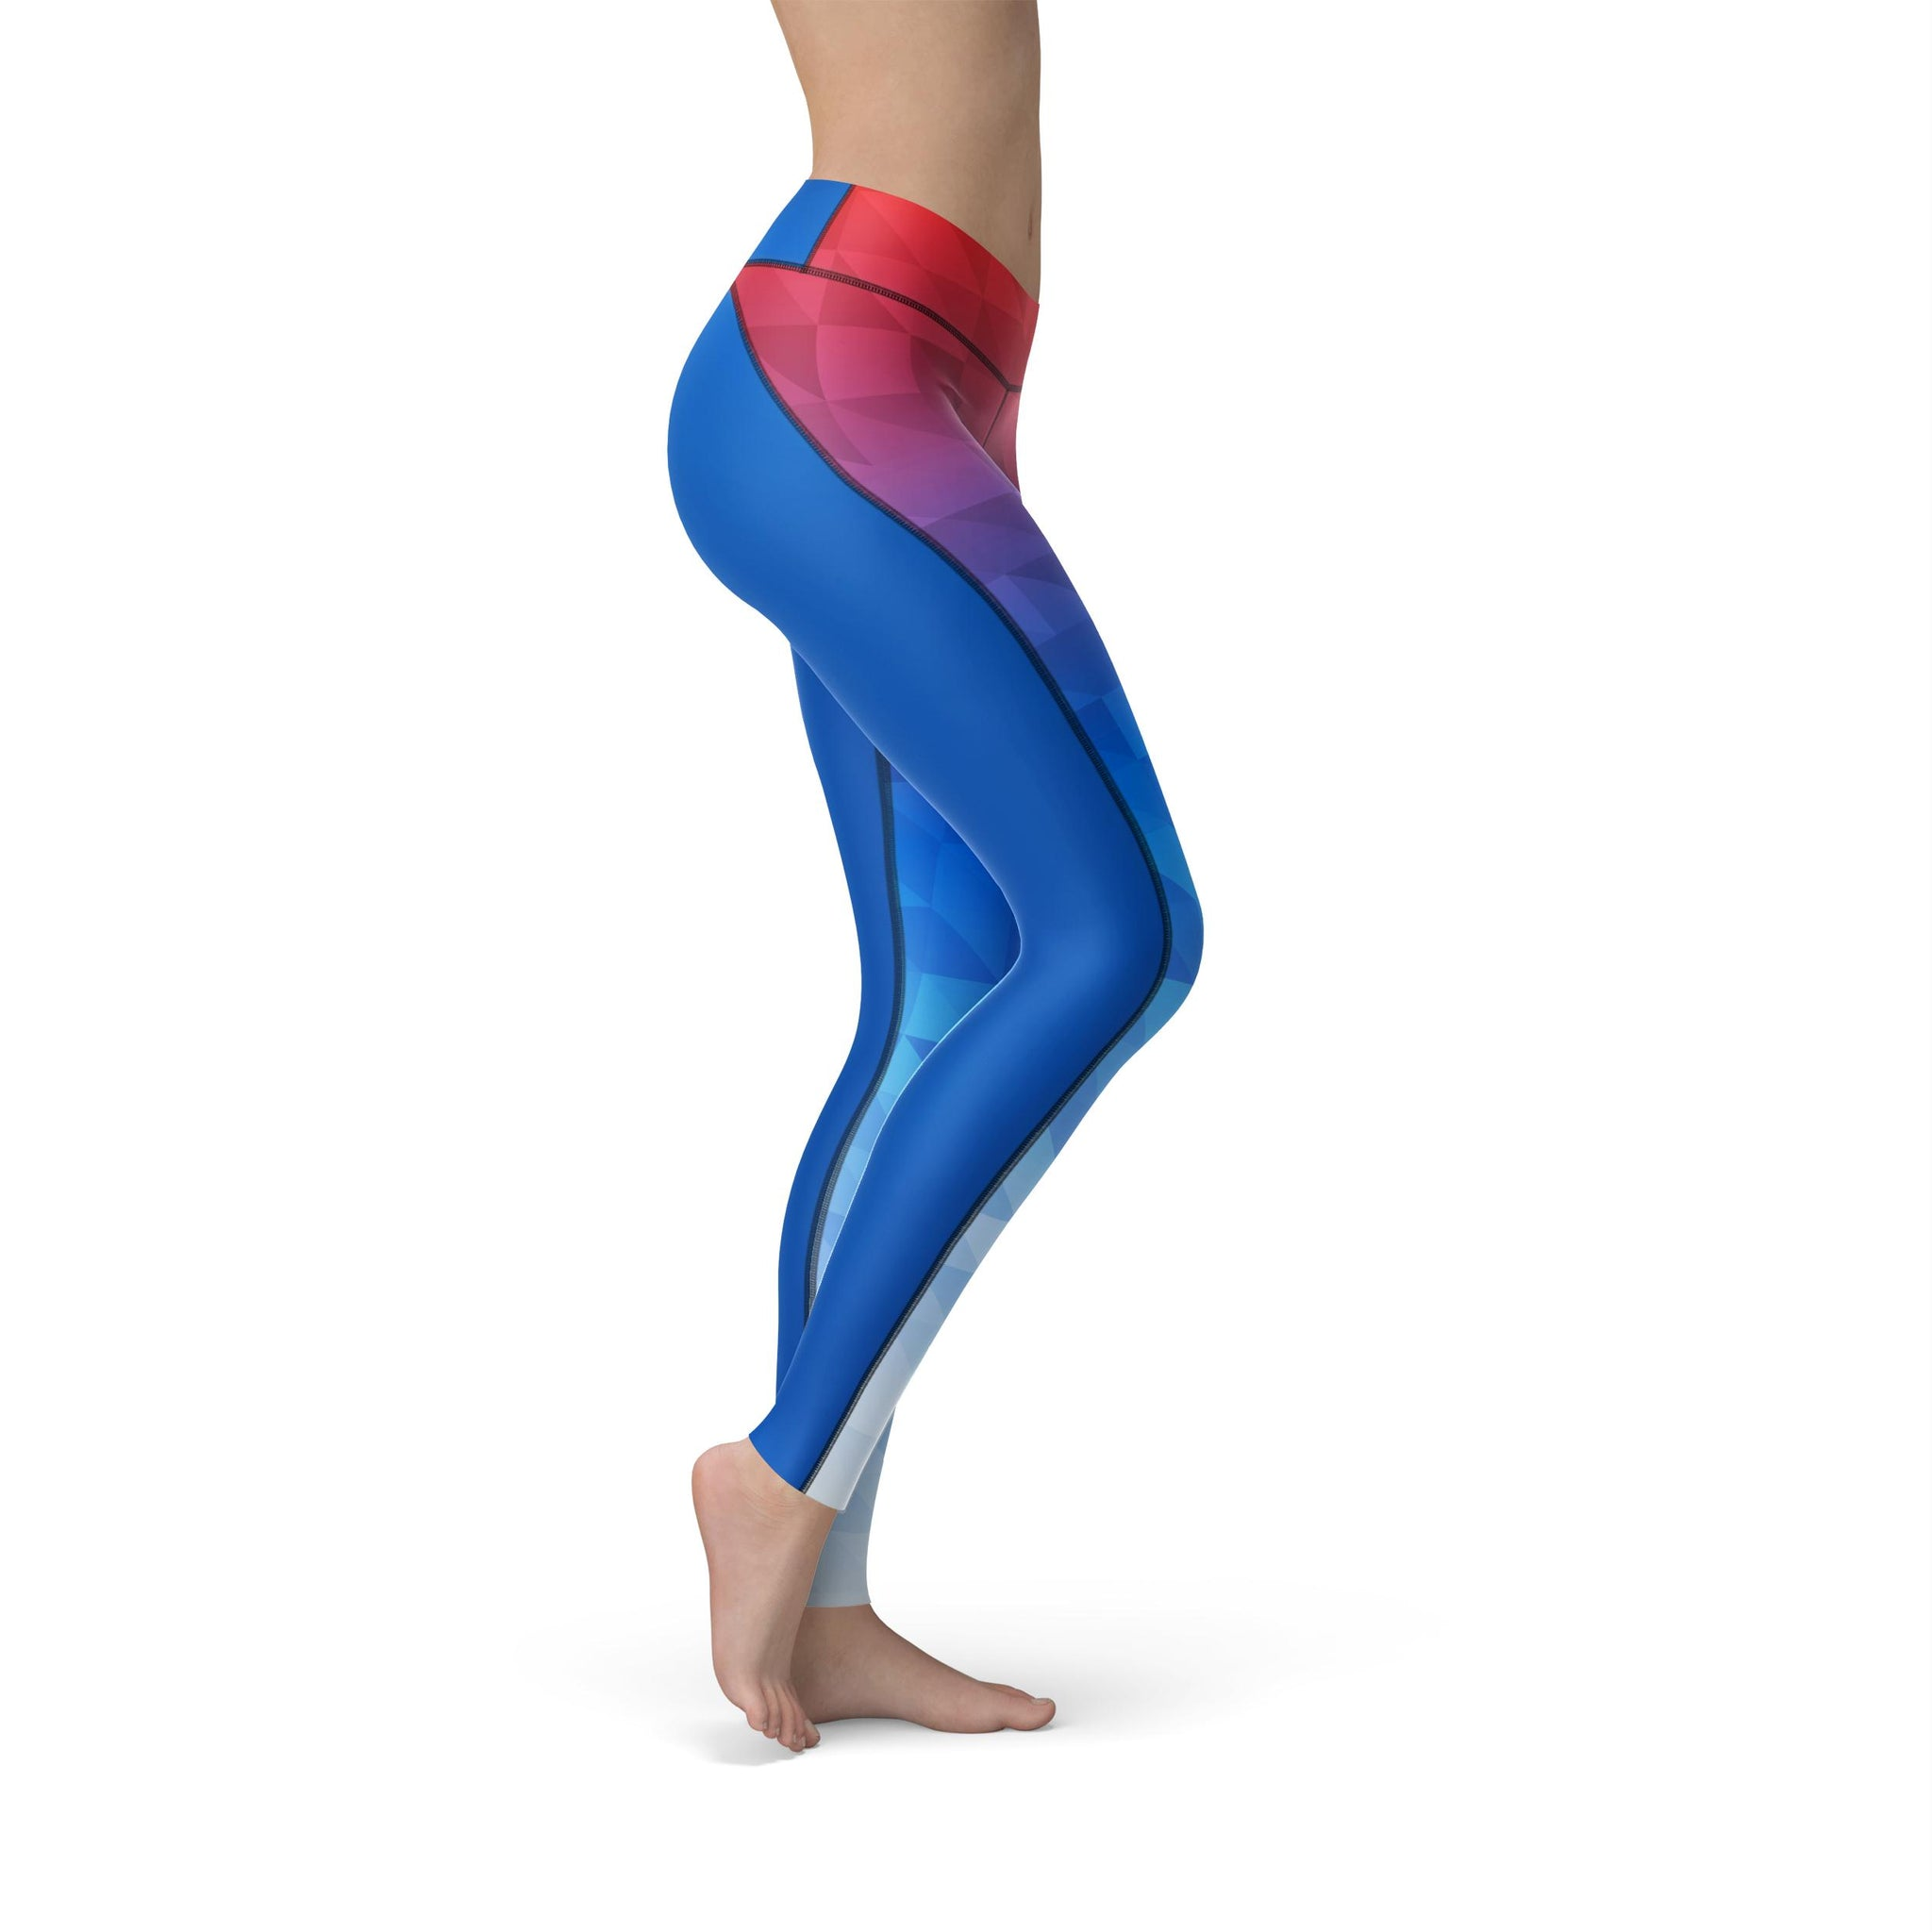 High-Waist Prism Fusion Astro Yoga Pants